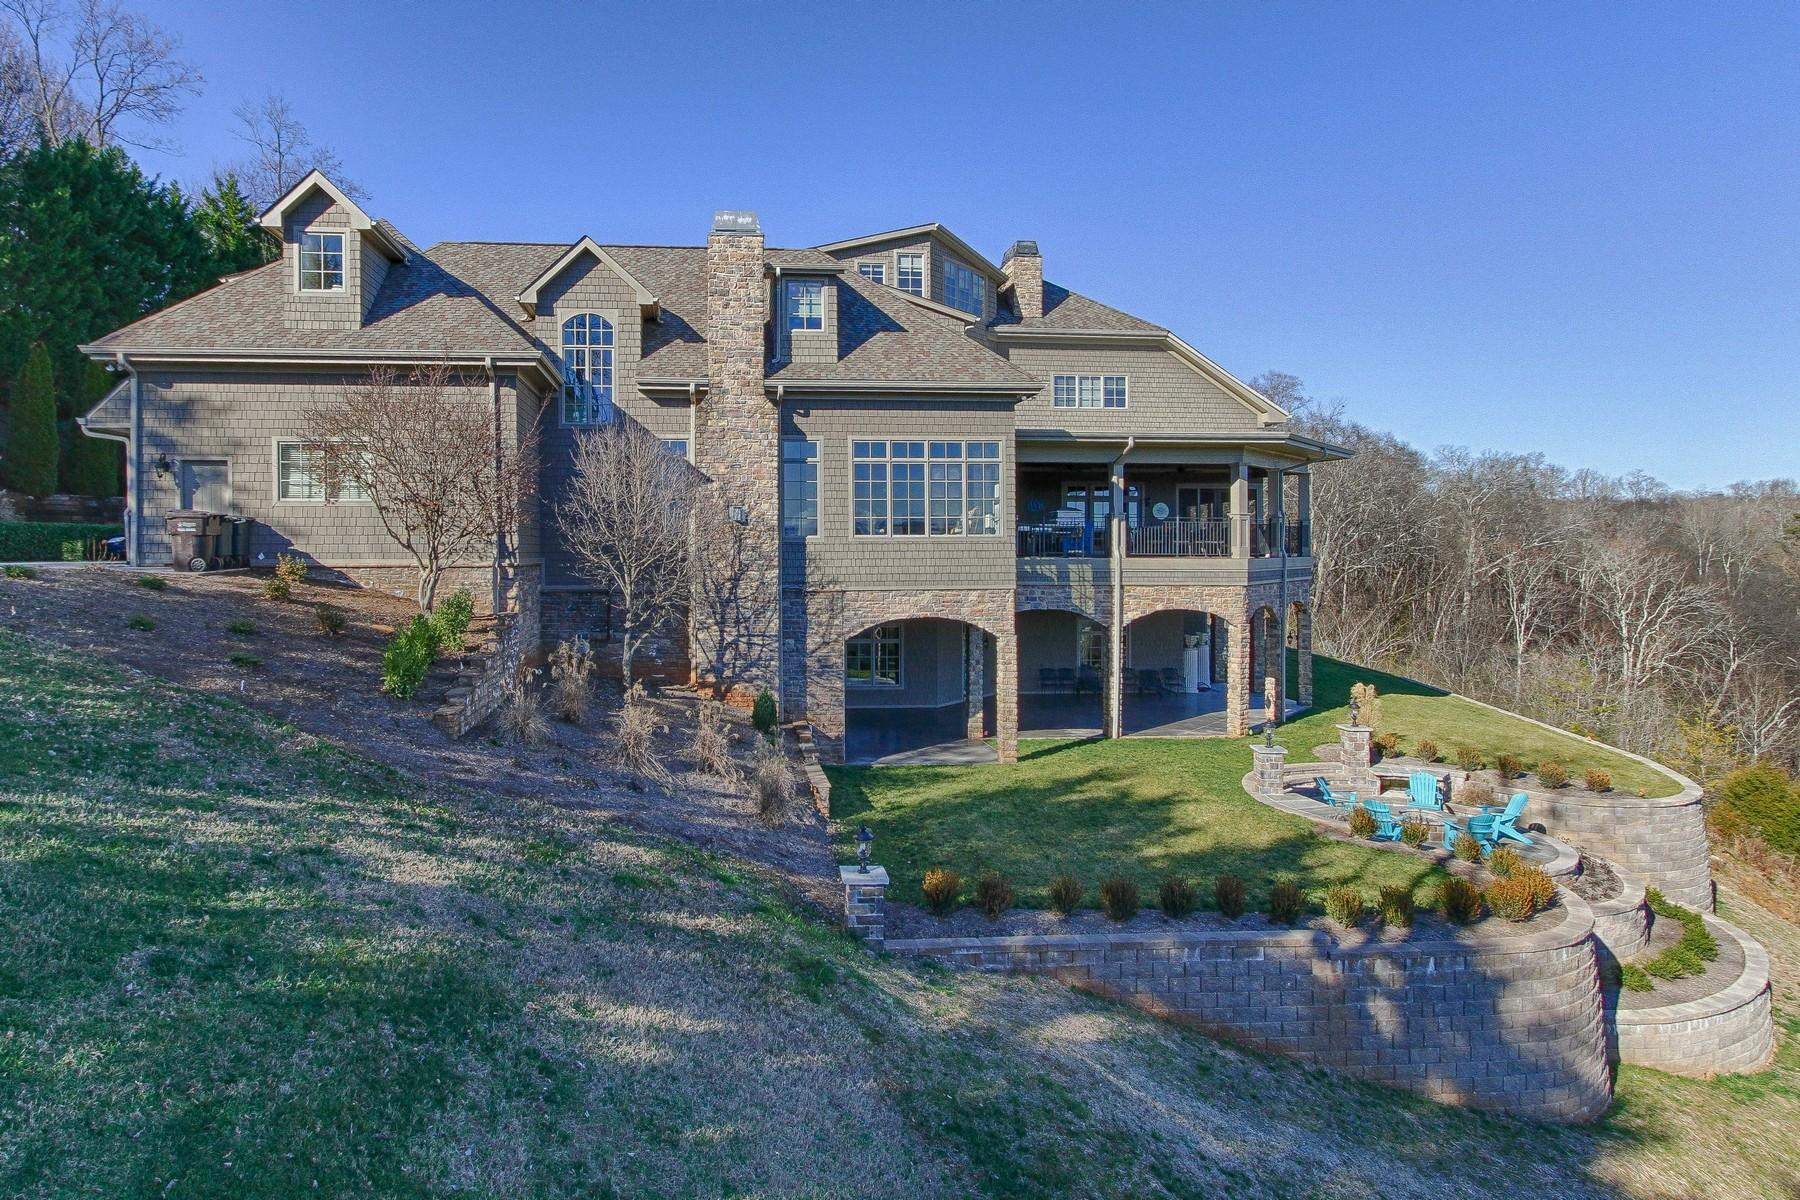 1928 Rudder Lane, Knoxville, Tennessee 37919, 7 Bedrooms Bedrooms, ,8 BathroomsBathrooms,Single Family,For Sale,Rudder,1049585